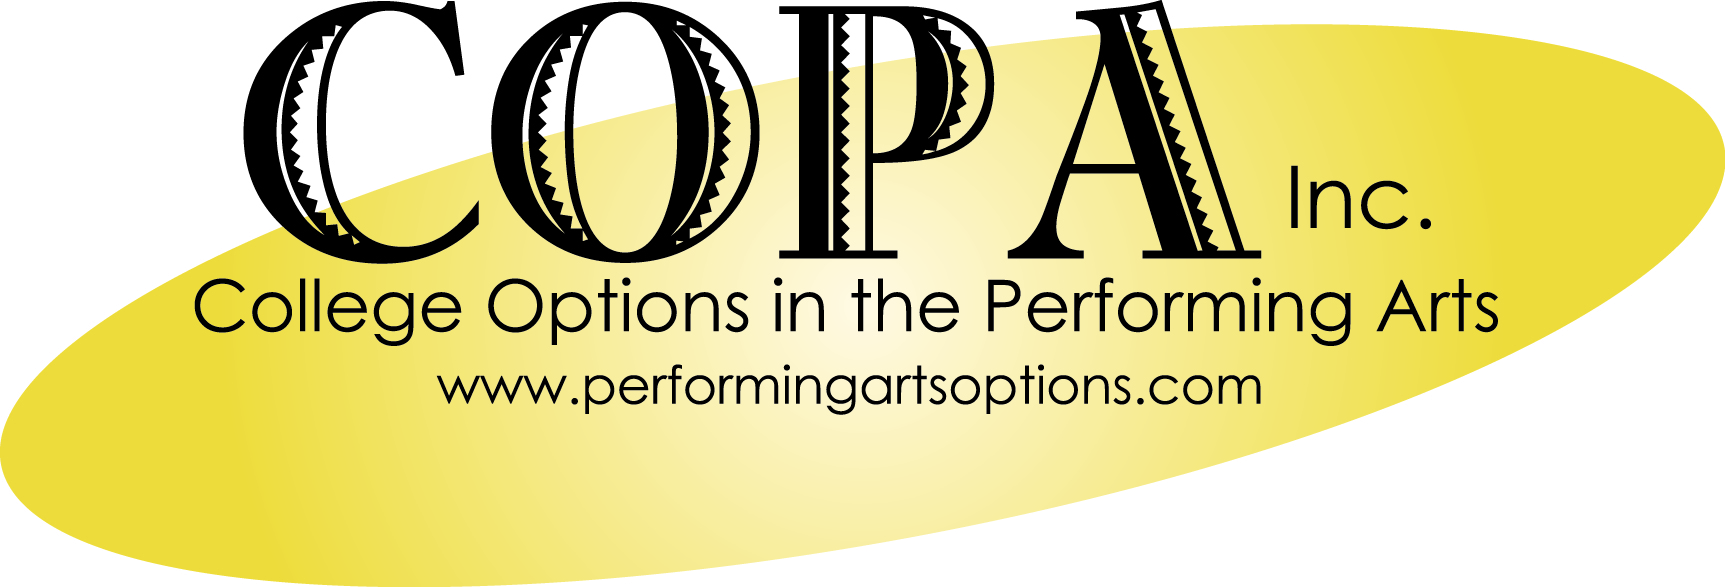 Business - College Advisors | COPA: College Options in the Performing Arts